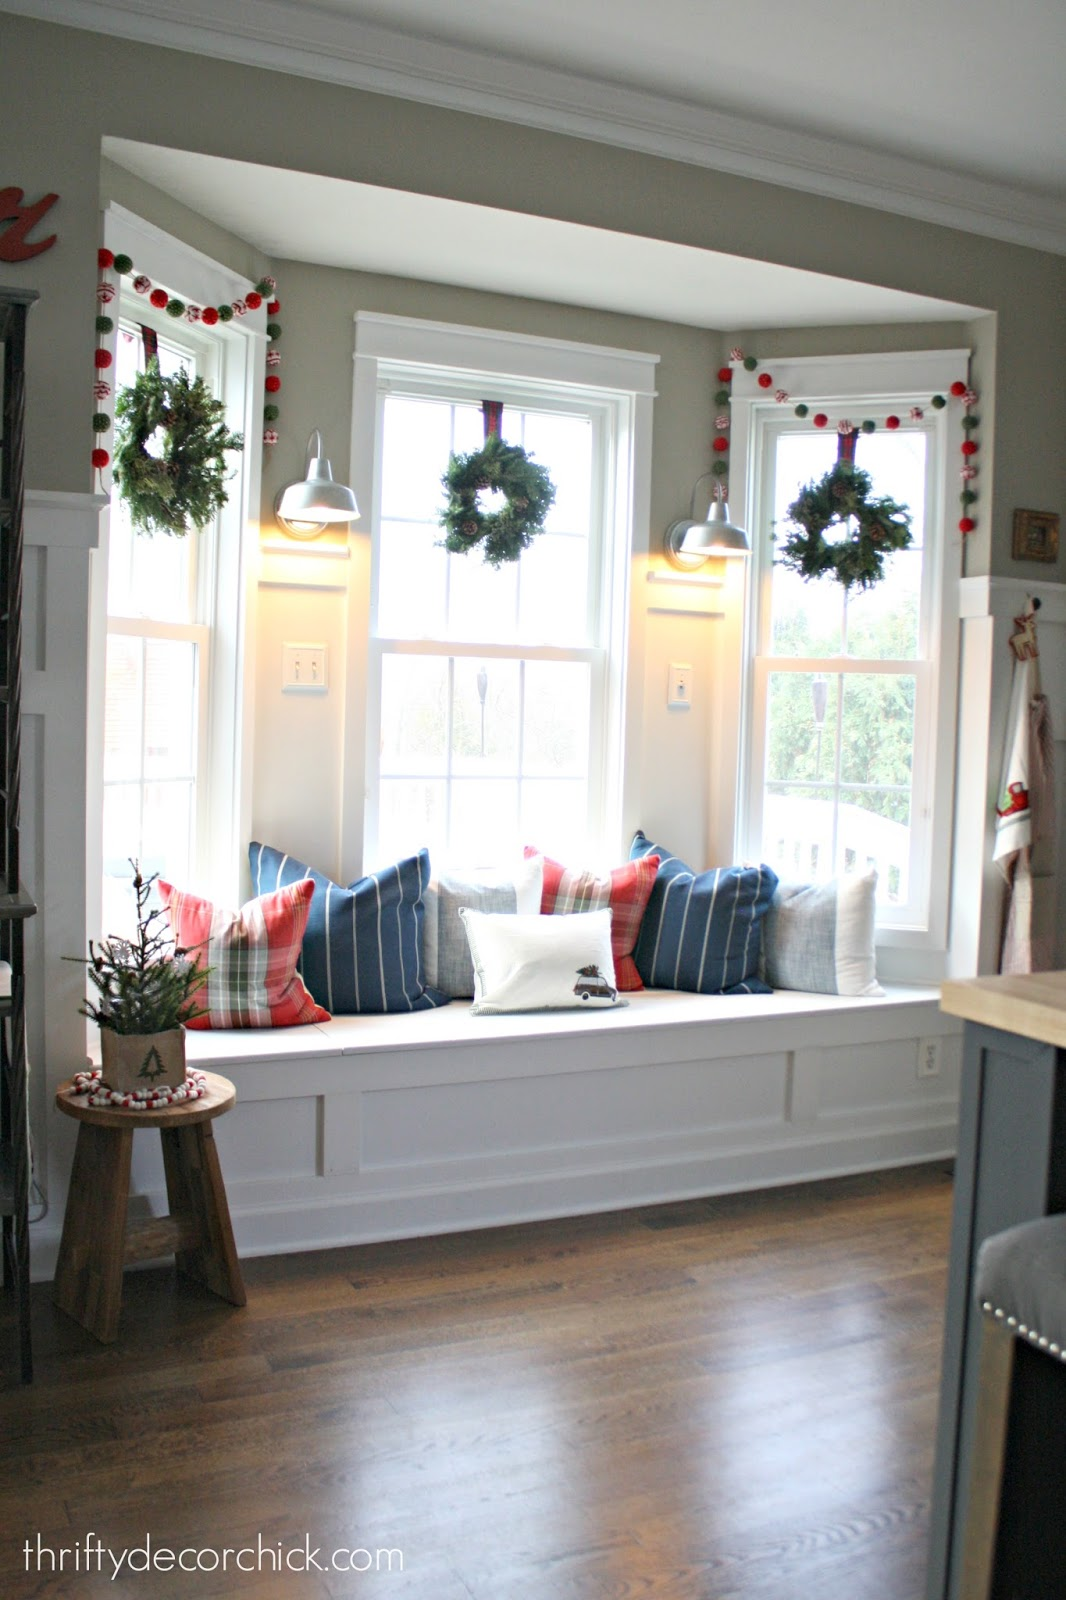 Christmas Kitchen Tour The Christmas Kitchen From Thrifty Decor Chick